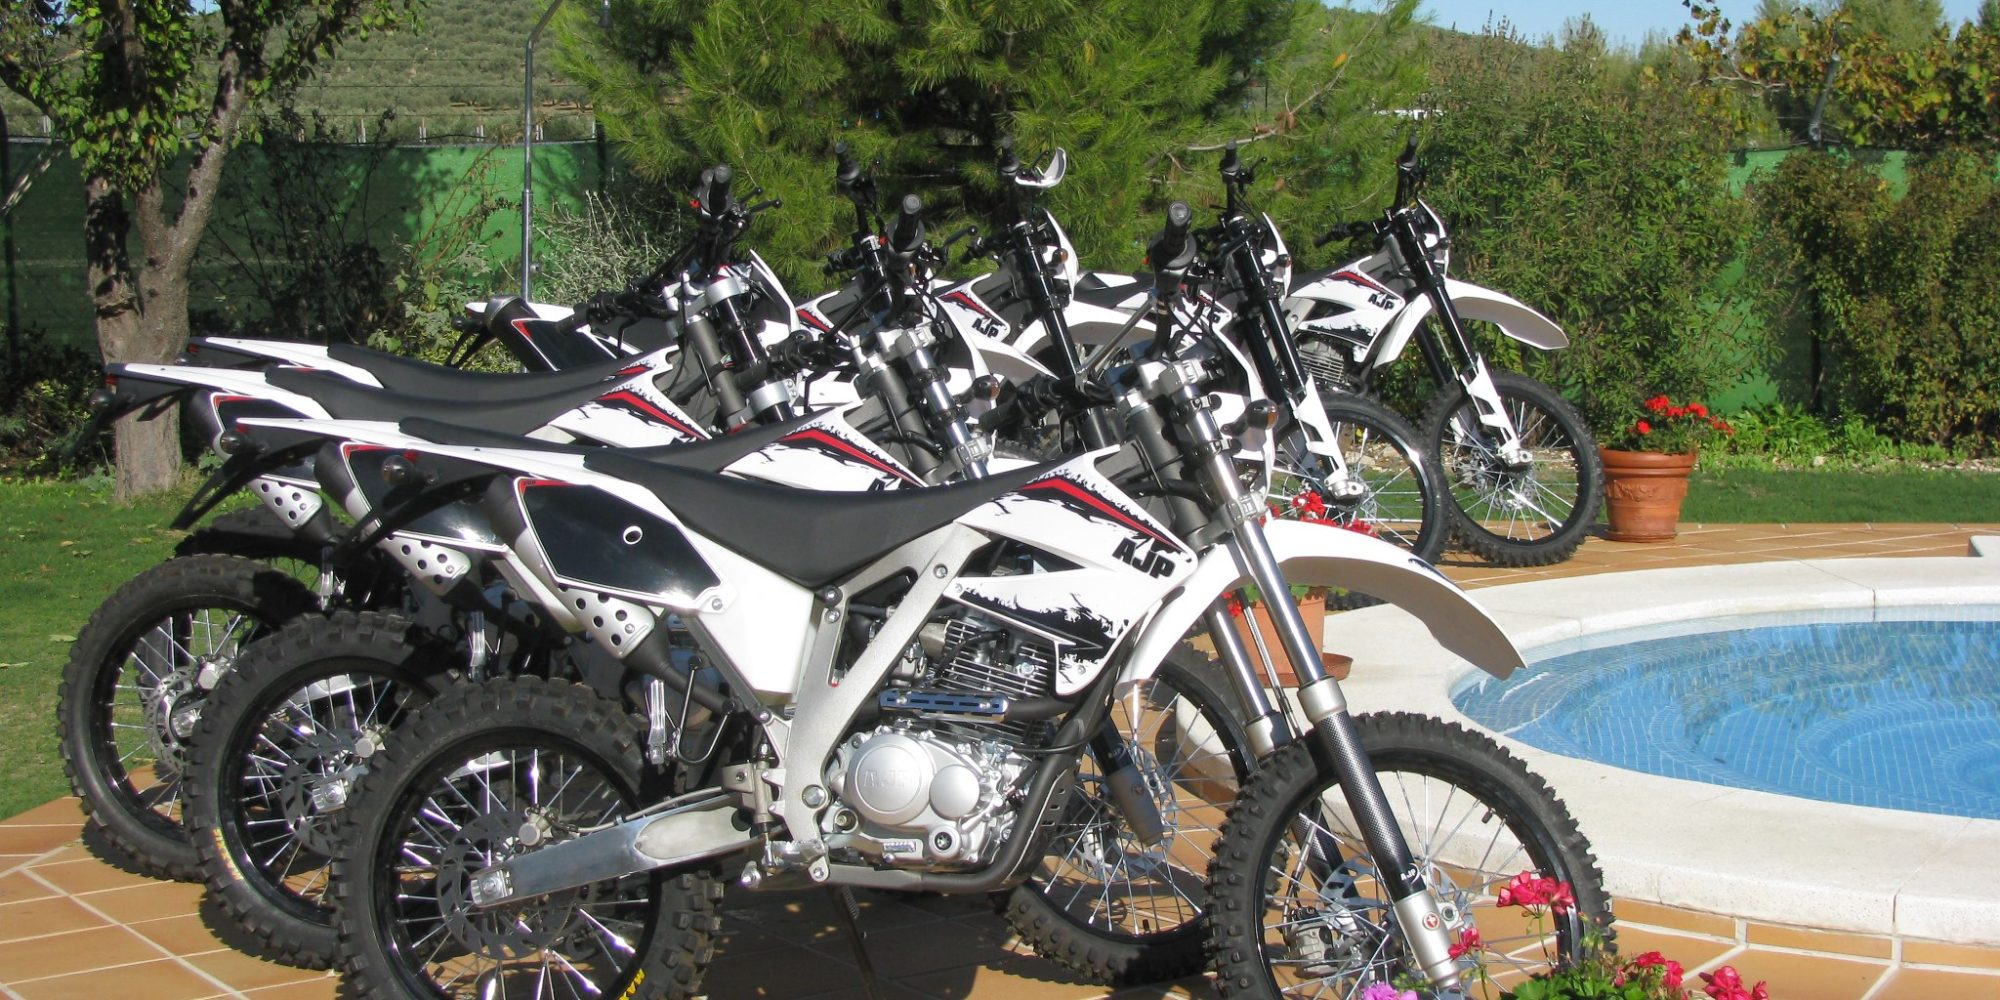 adventure motorcycle tours in Malaga, Spain.